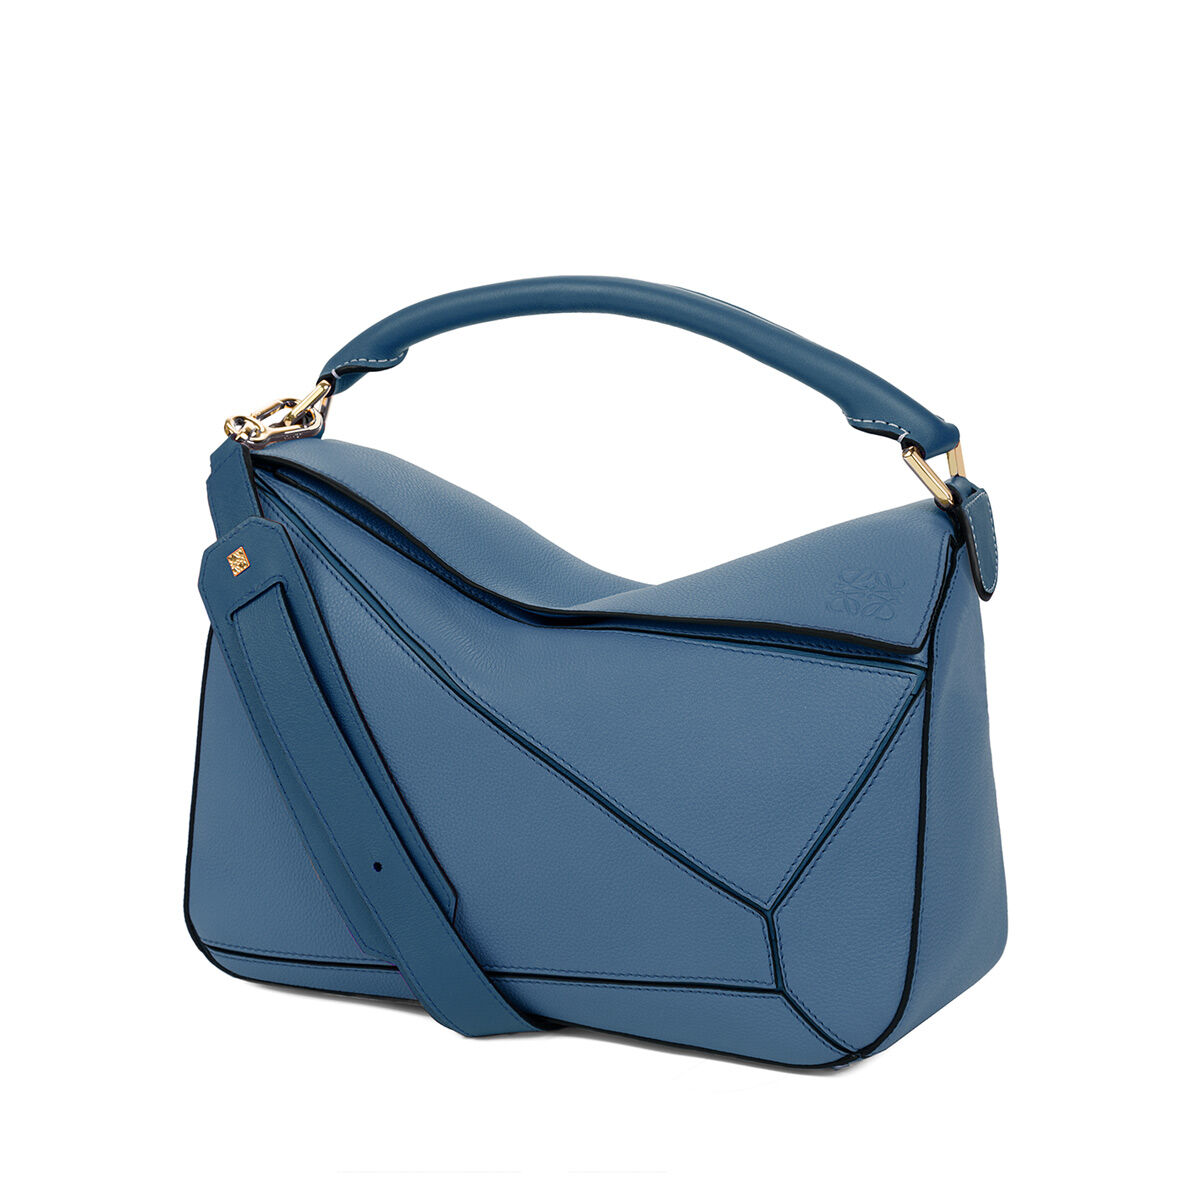 Barcelona Bag in Indigo Soft Grained Calfskin Loewe RJWmKnT